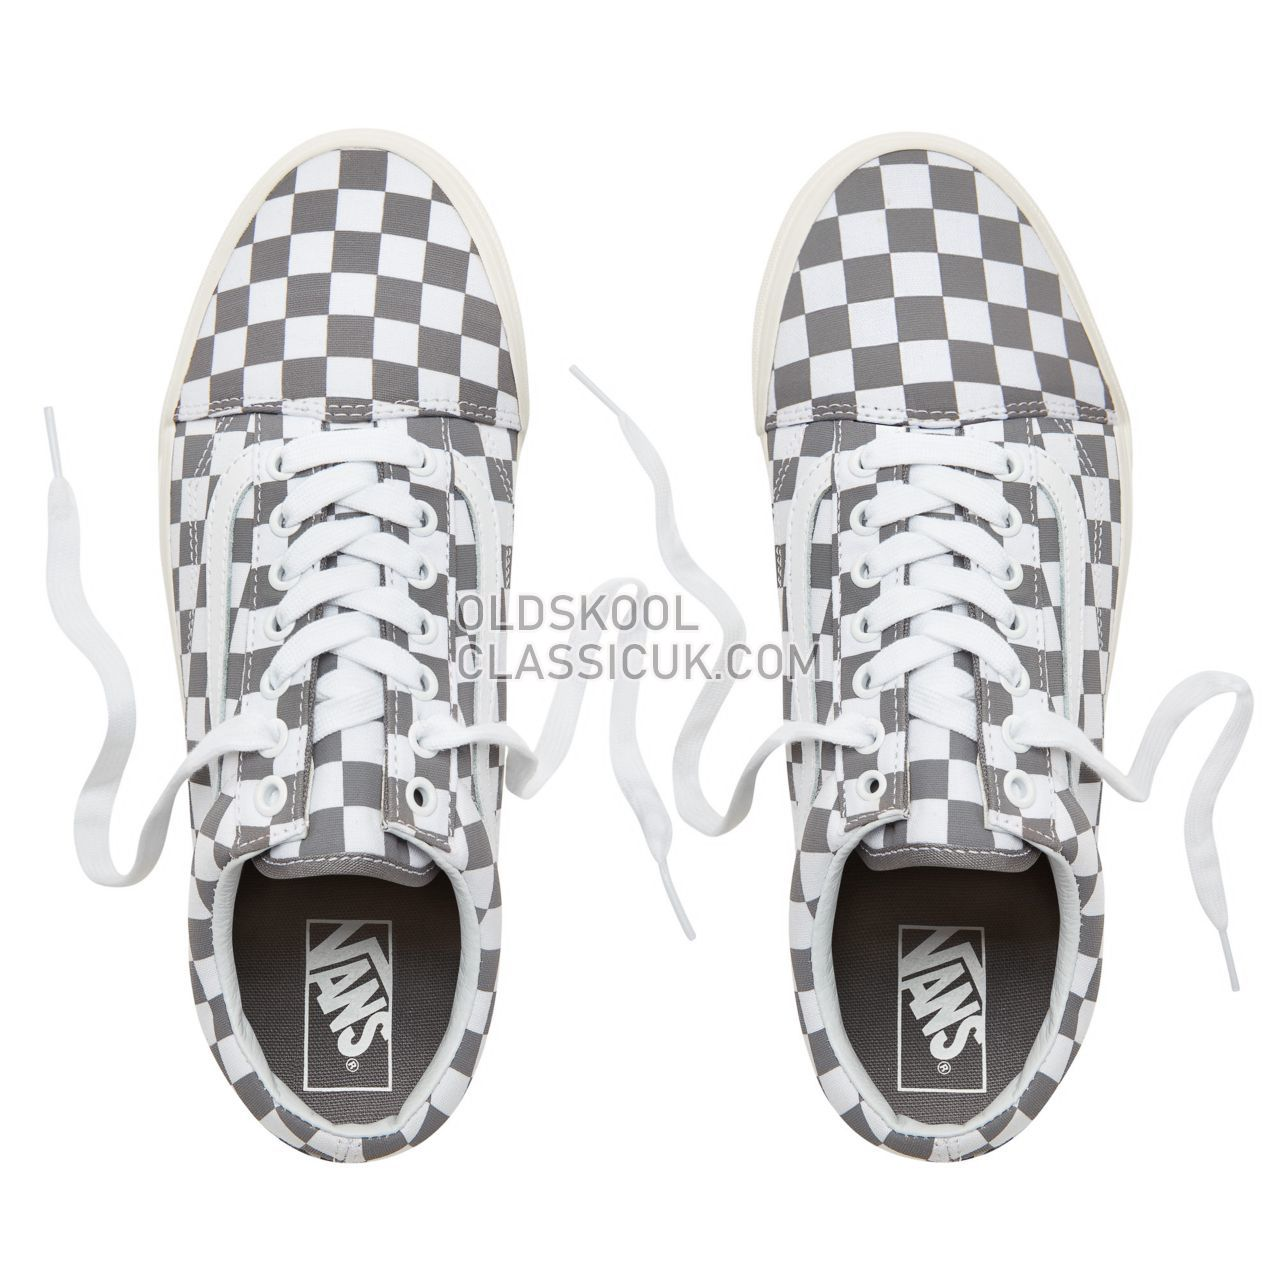 Vans Checkerboard Old Skool Sneakers Mens Womens Unisex (Checkerboard) Pewter/Marshmallow VA38G1U53 Shoes